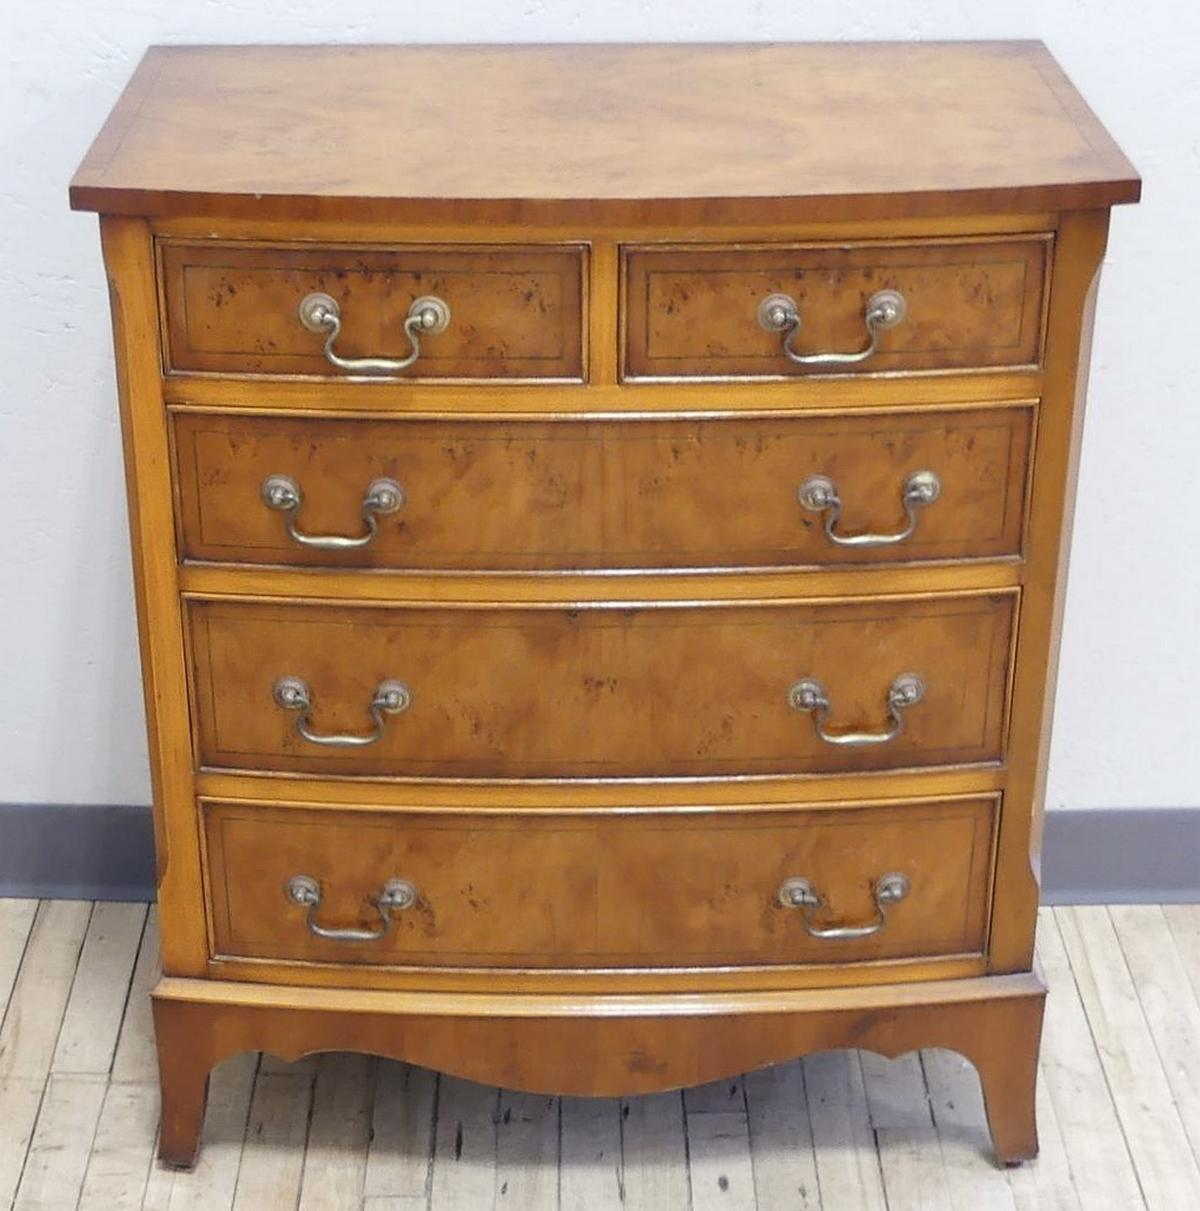 BEVAN-FUNNELL CHEST